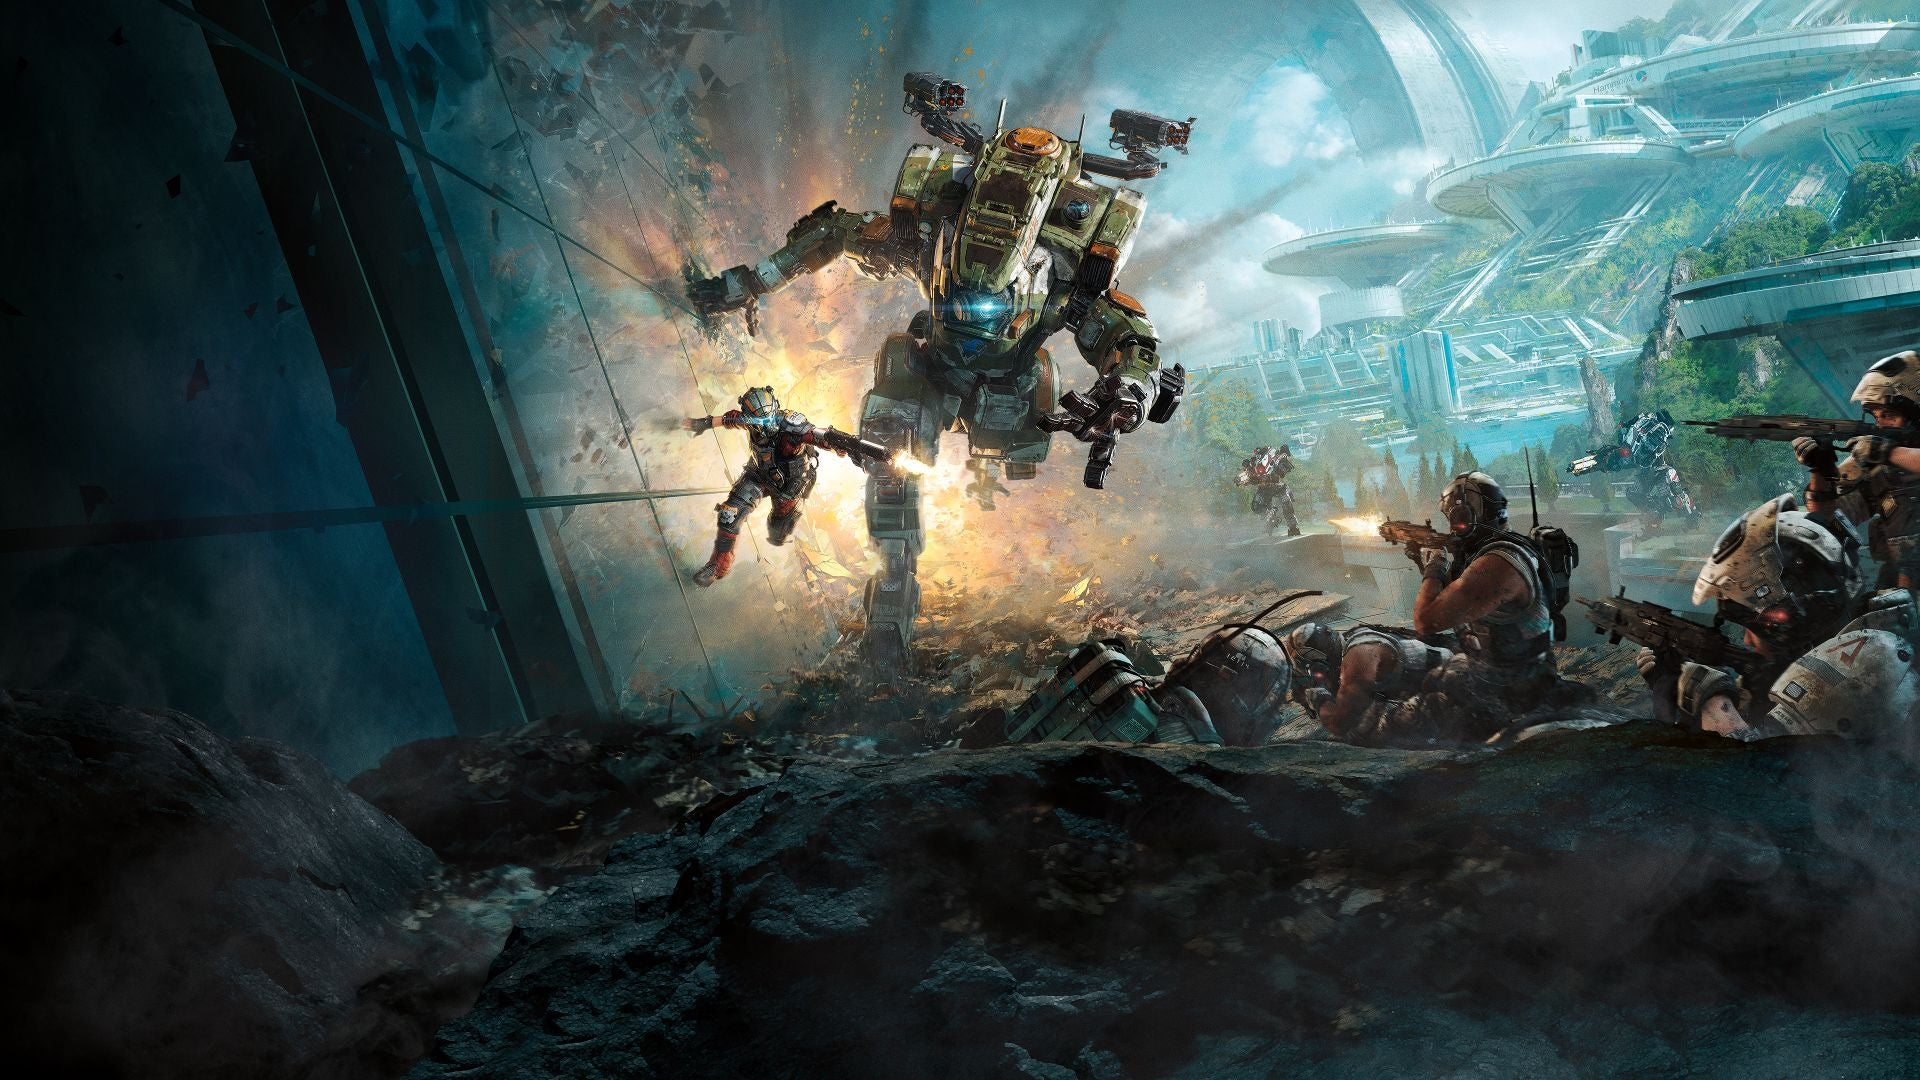 Titanfall 3 Ea Confirms A New Game Is In Development